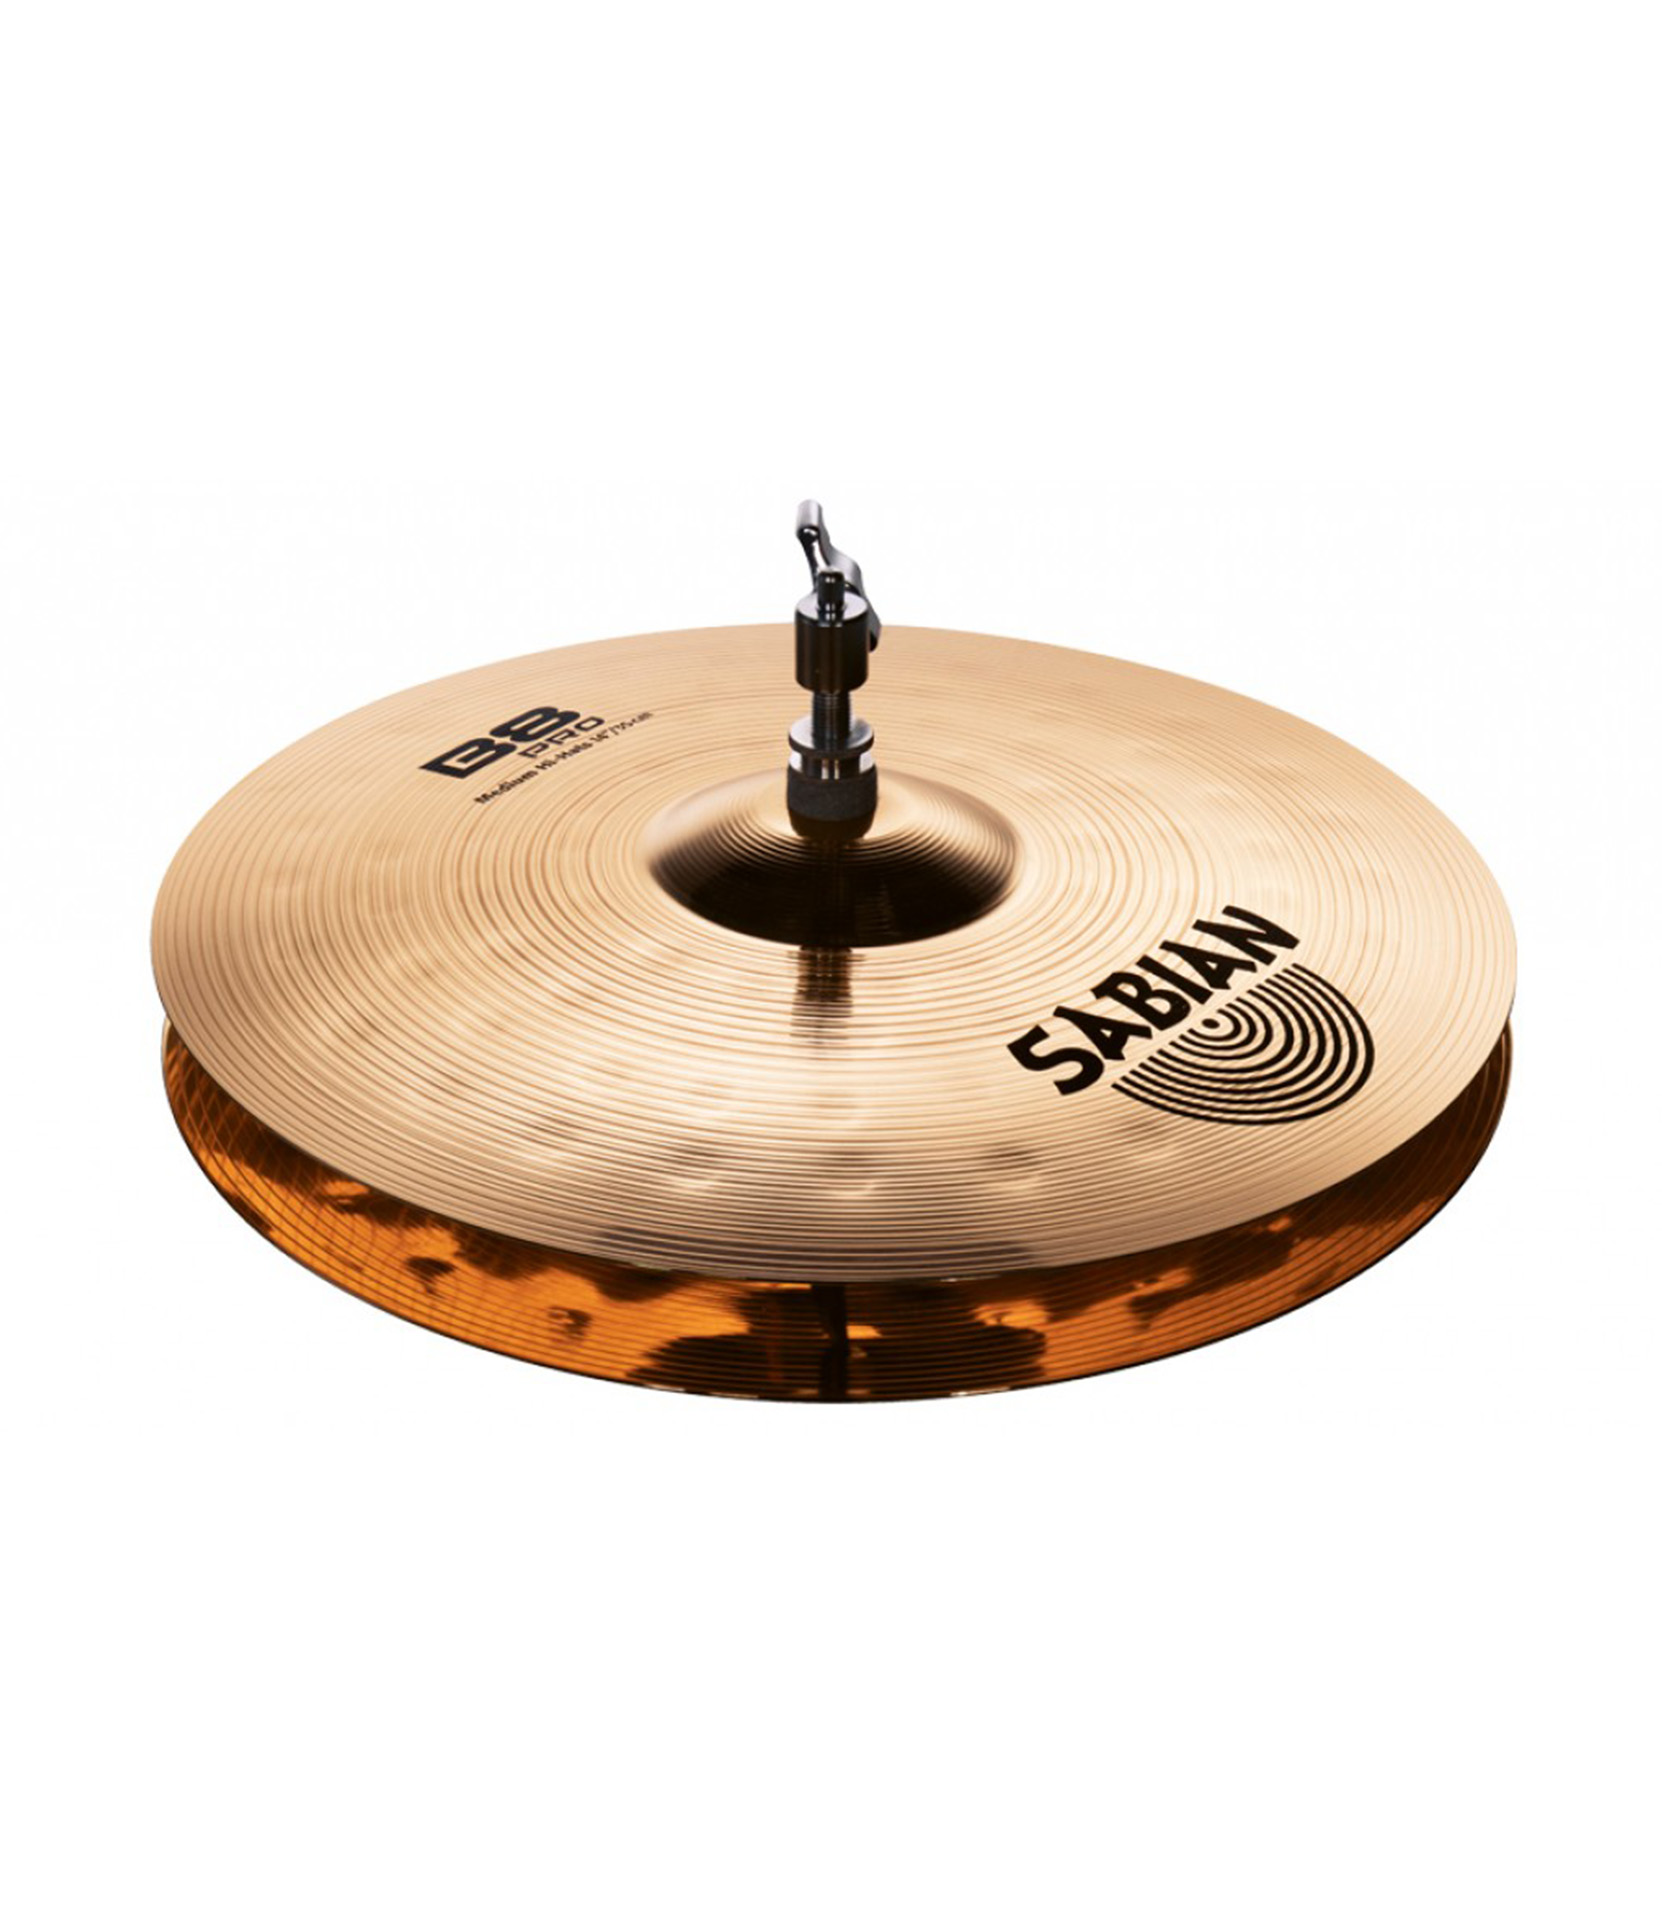 Sabian - 14 B8 Pro M Hats - Melody House Musical Instruments